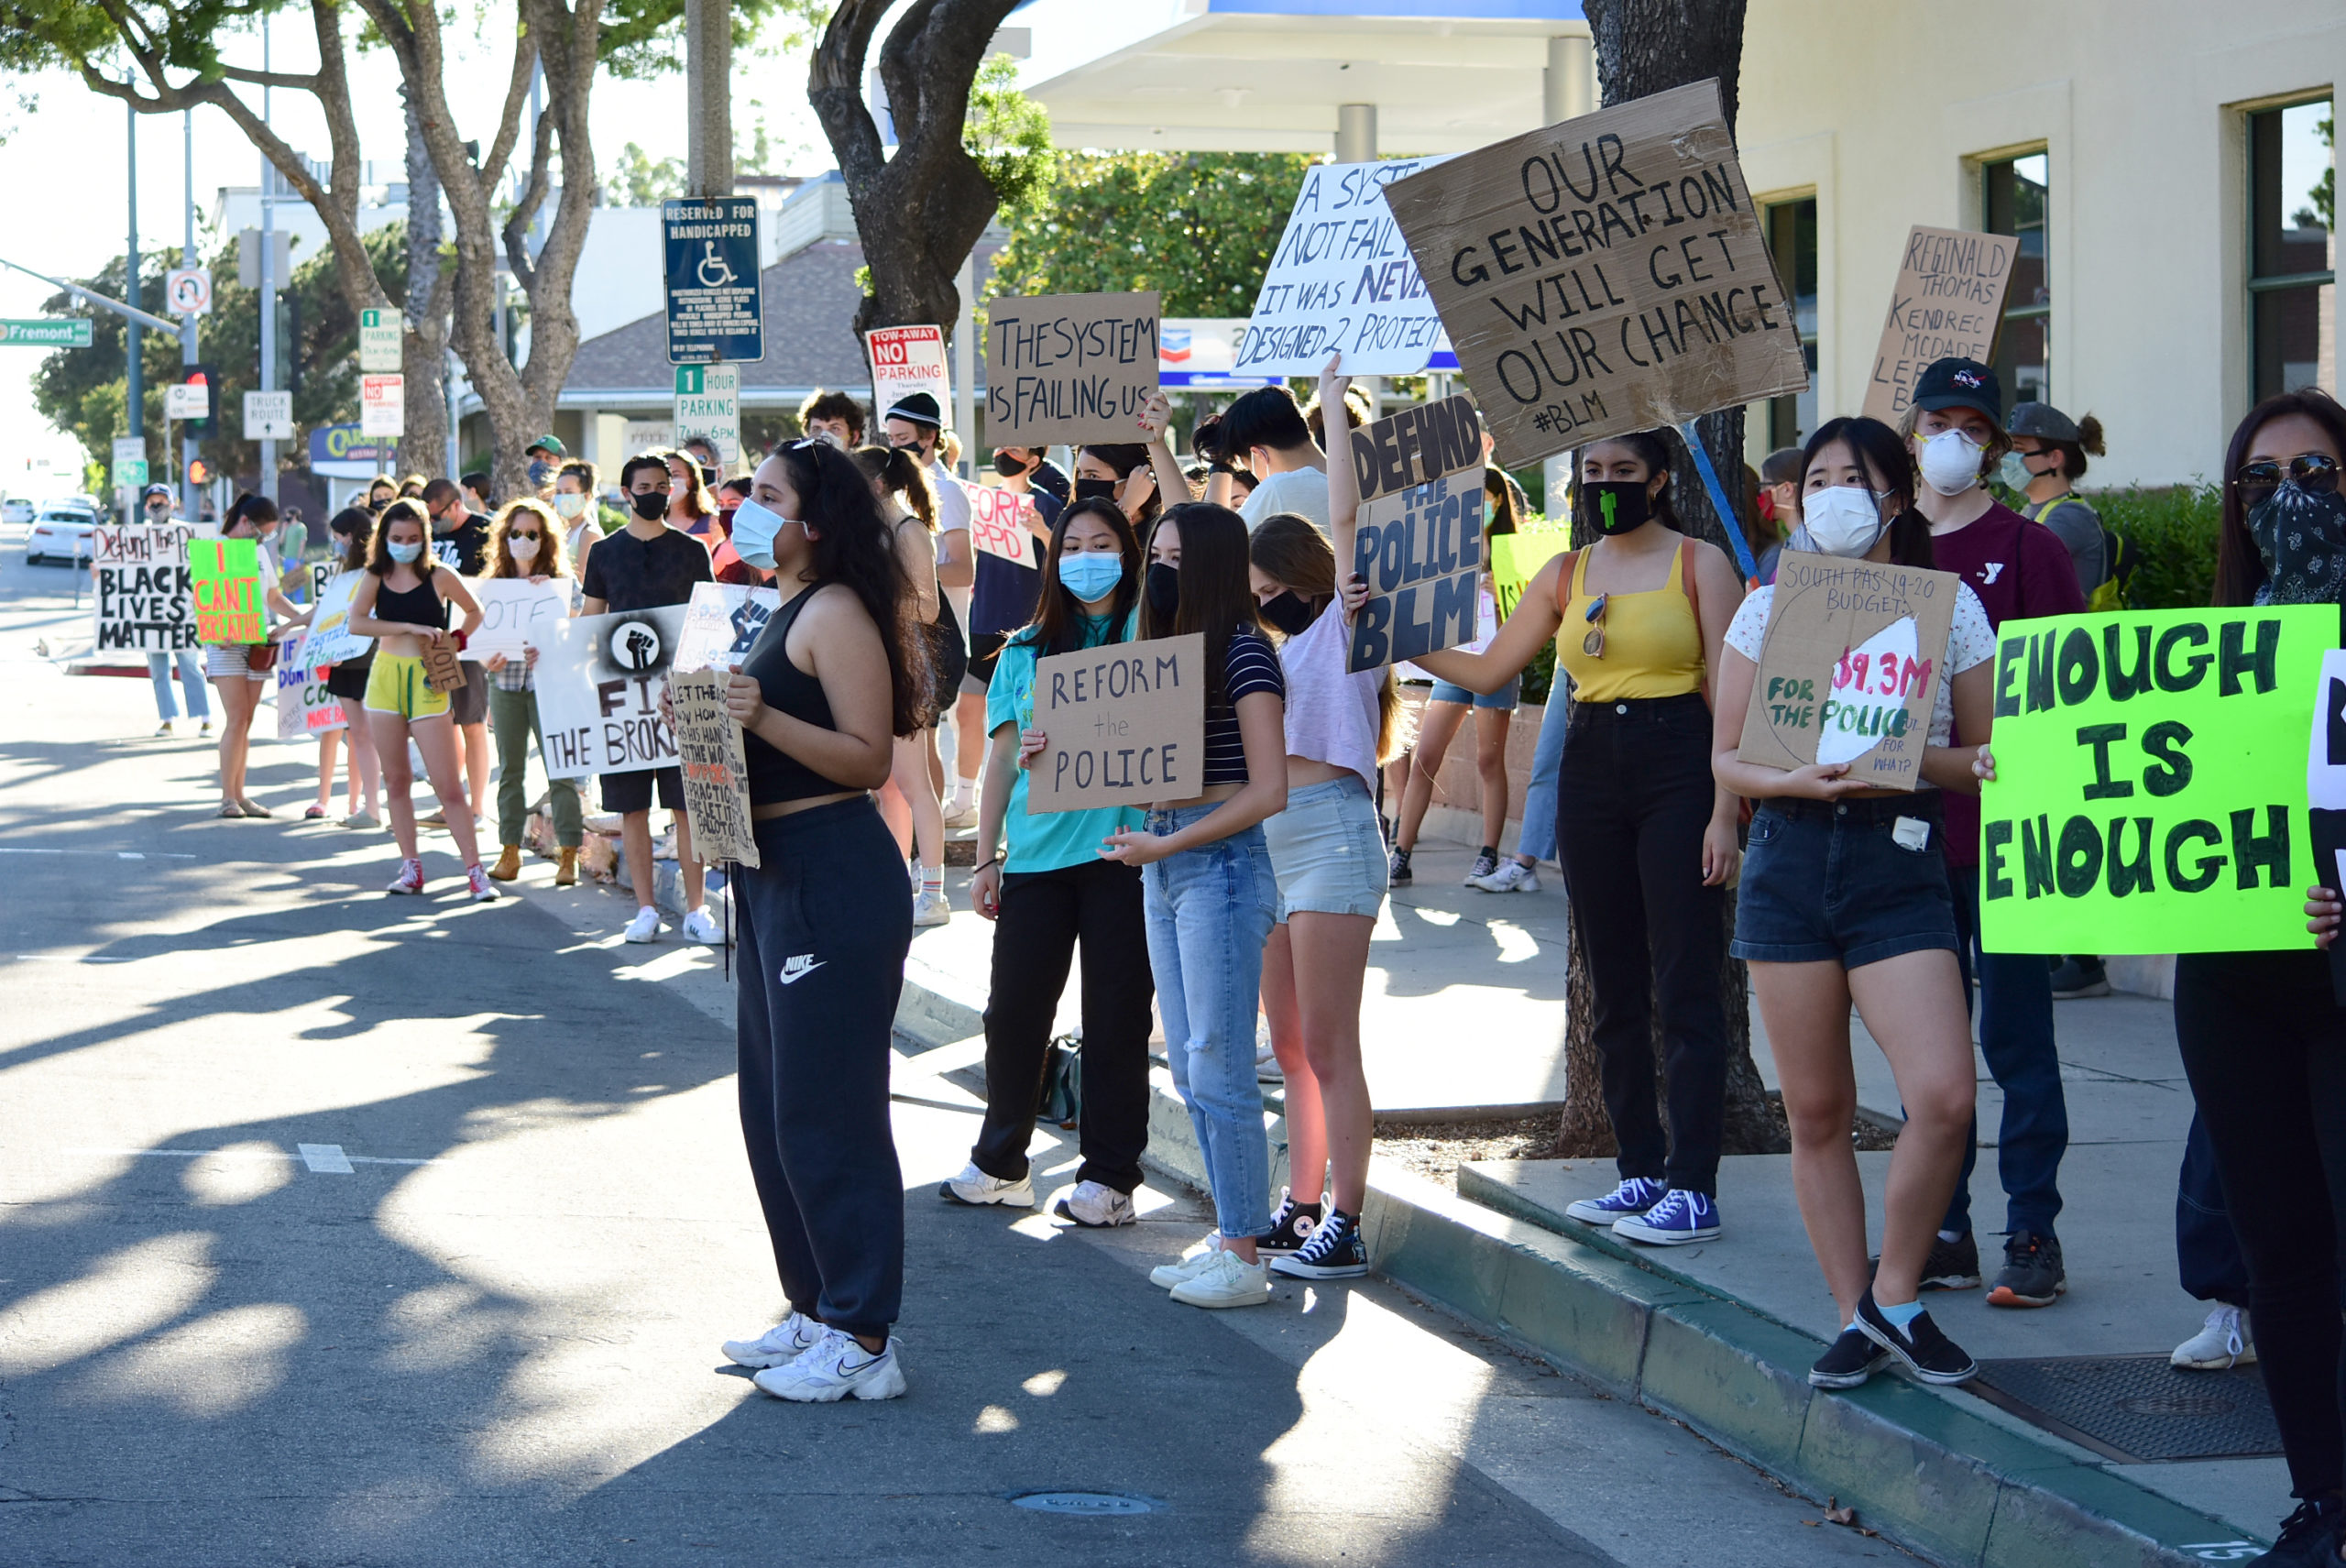 south-pasadena-news-06-12-2020-blm-black-lives-matter-sp-youth-for-police-reform-protest-city-hall-mission-st-24